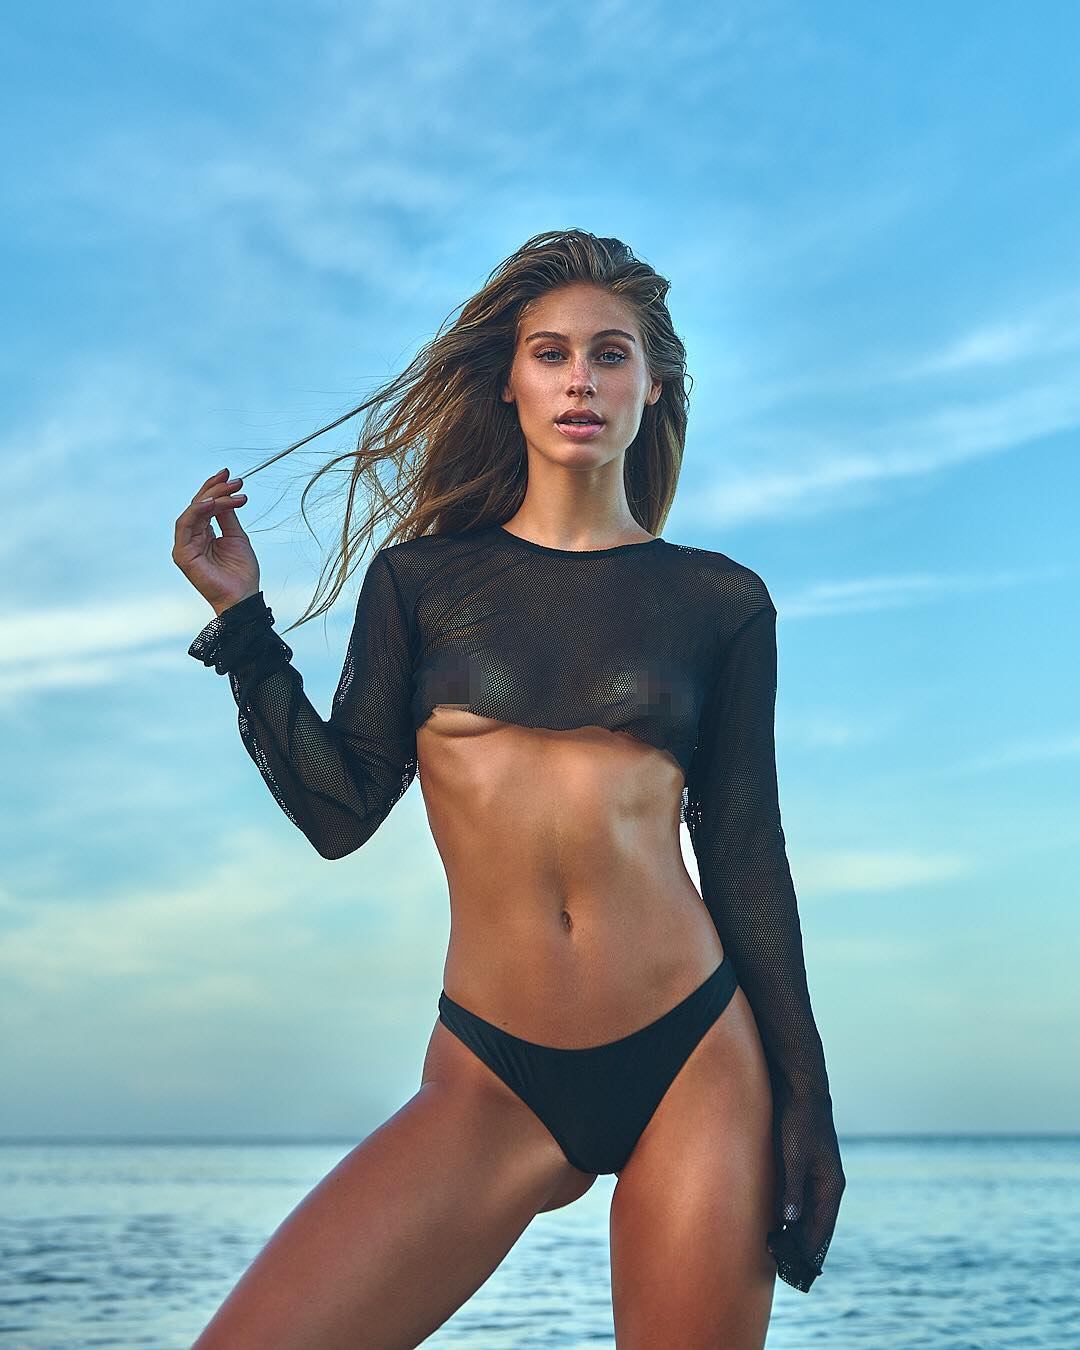 Youtube Ciara Lebamoff nude (15 photos), Topless, Bikini, Twitter, legs 2015